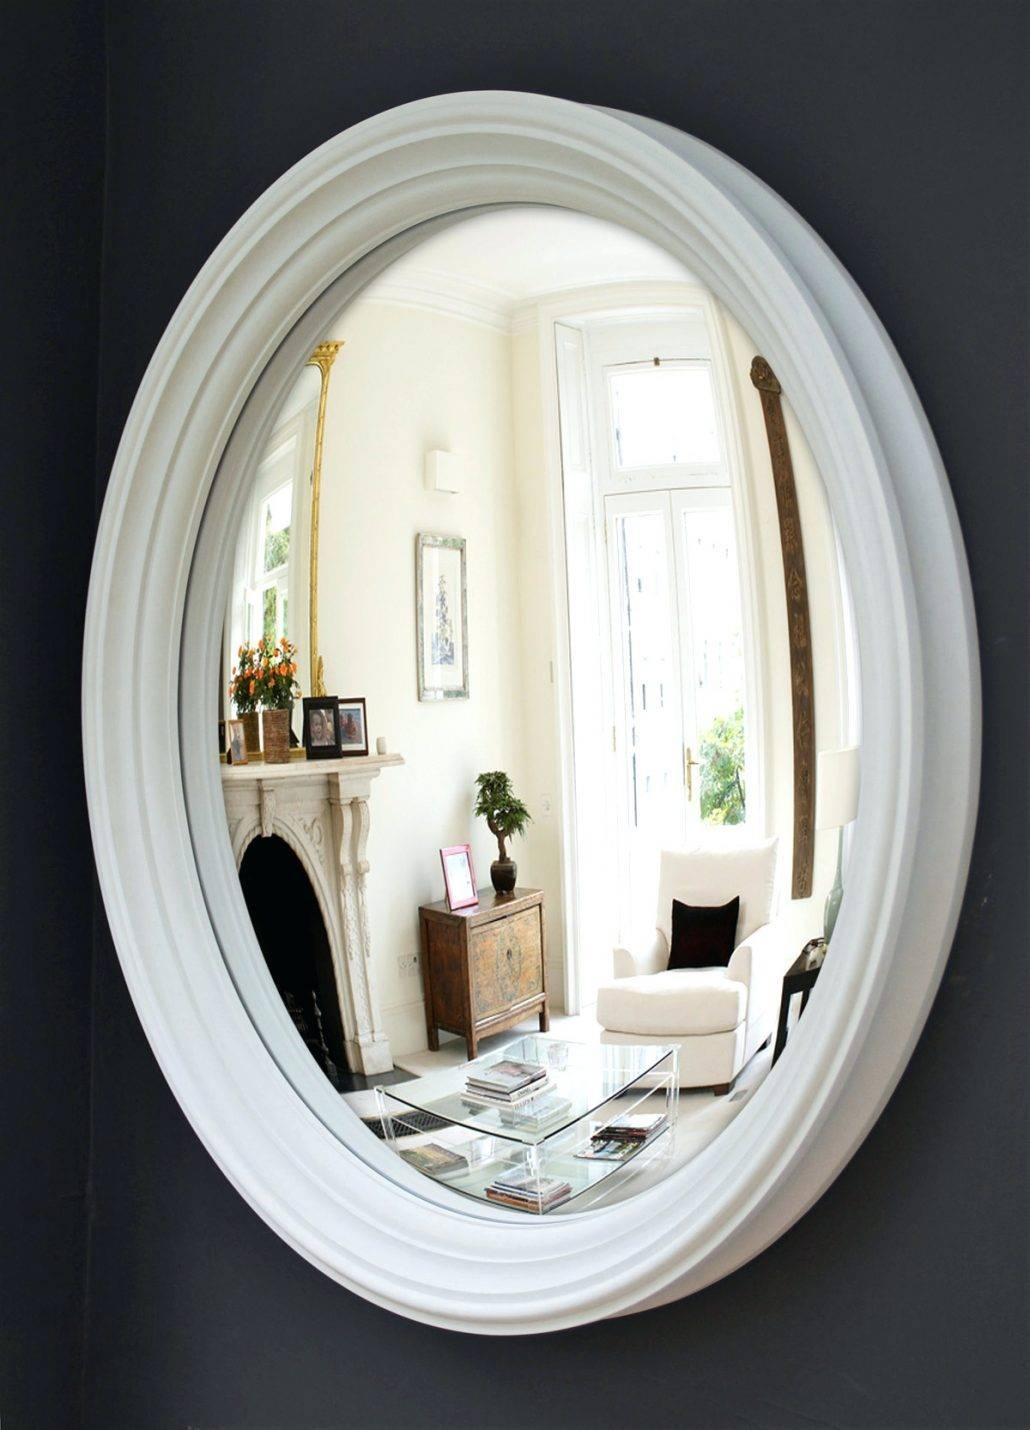 Mirrors : Buy Decorative Convex Mirror Large Decorative Convex With Regard To White Convex Mirrors (View 2 of 15)